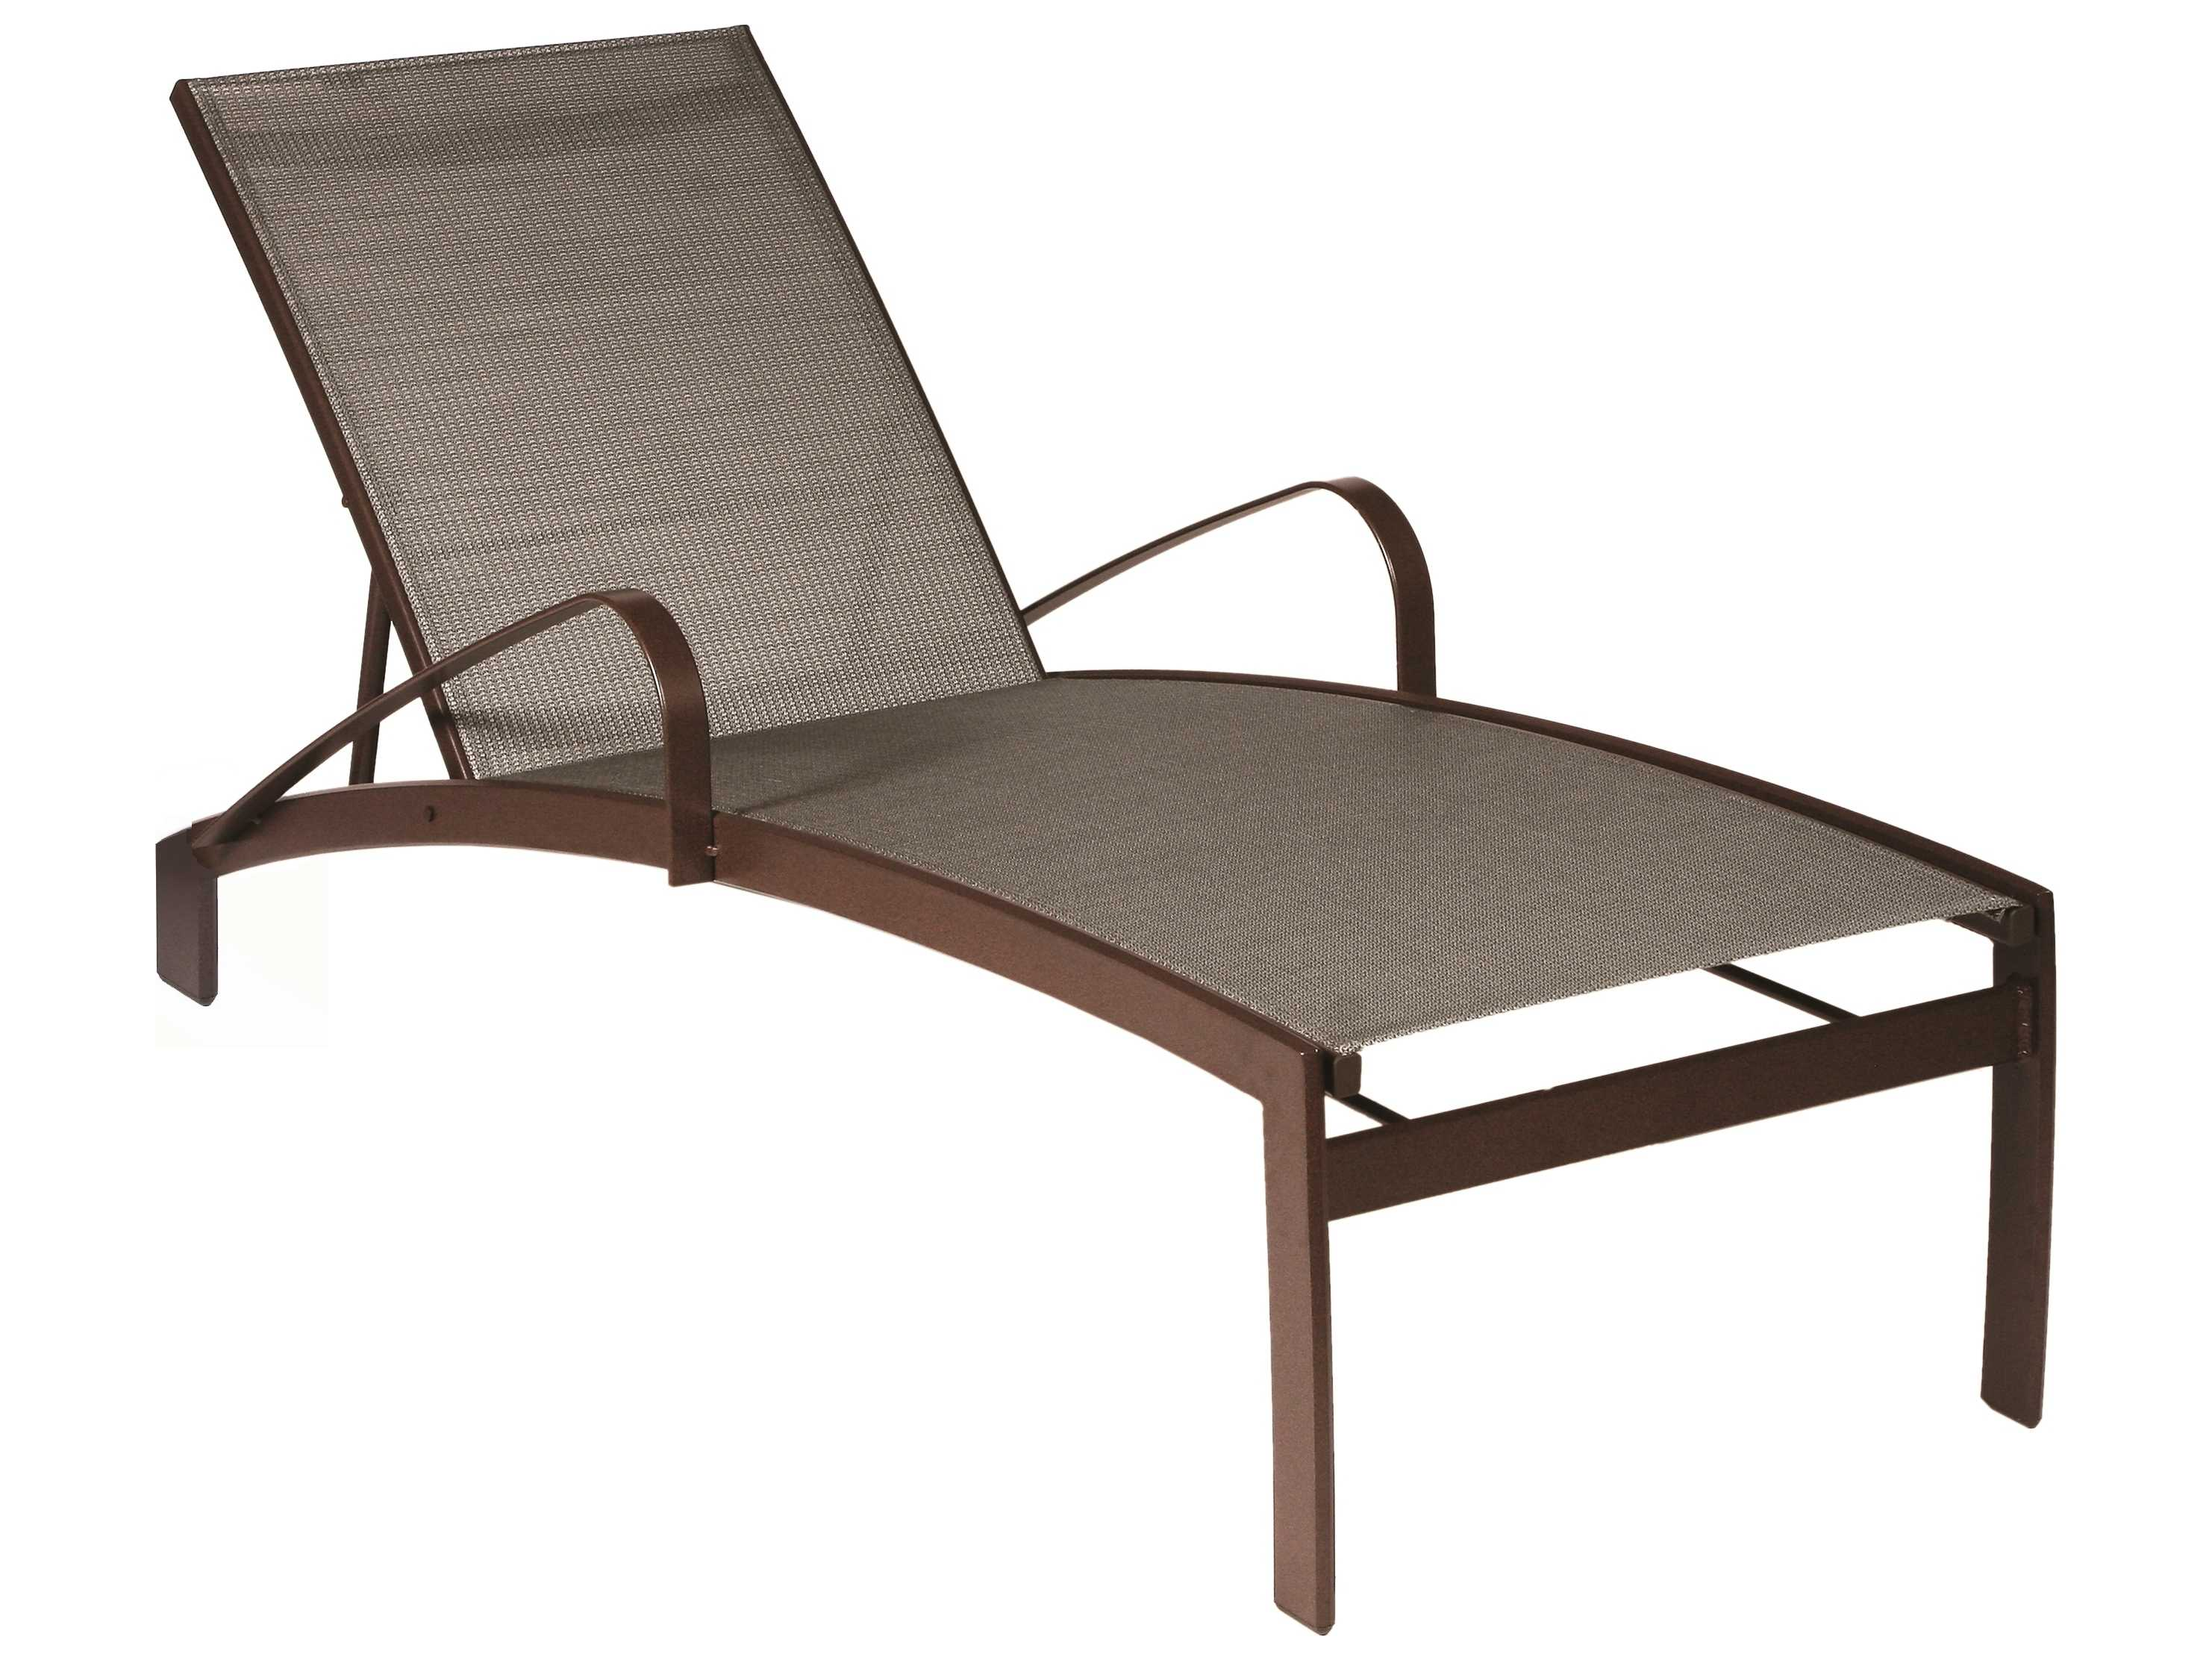 Suncoast vision sling cast aluminum chaise lounge 7989 for Chaise lounge aluminum